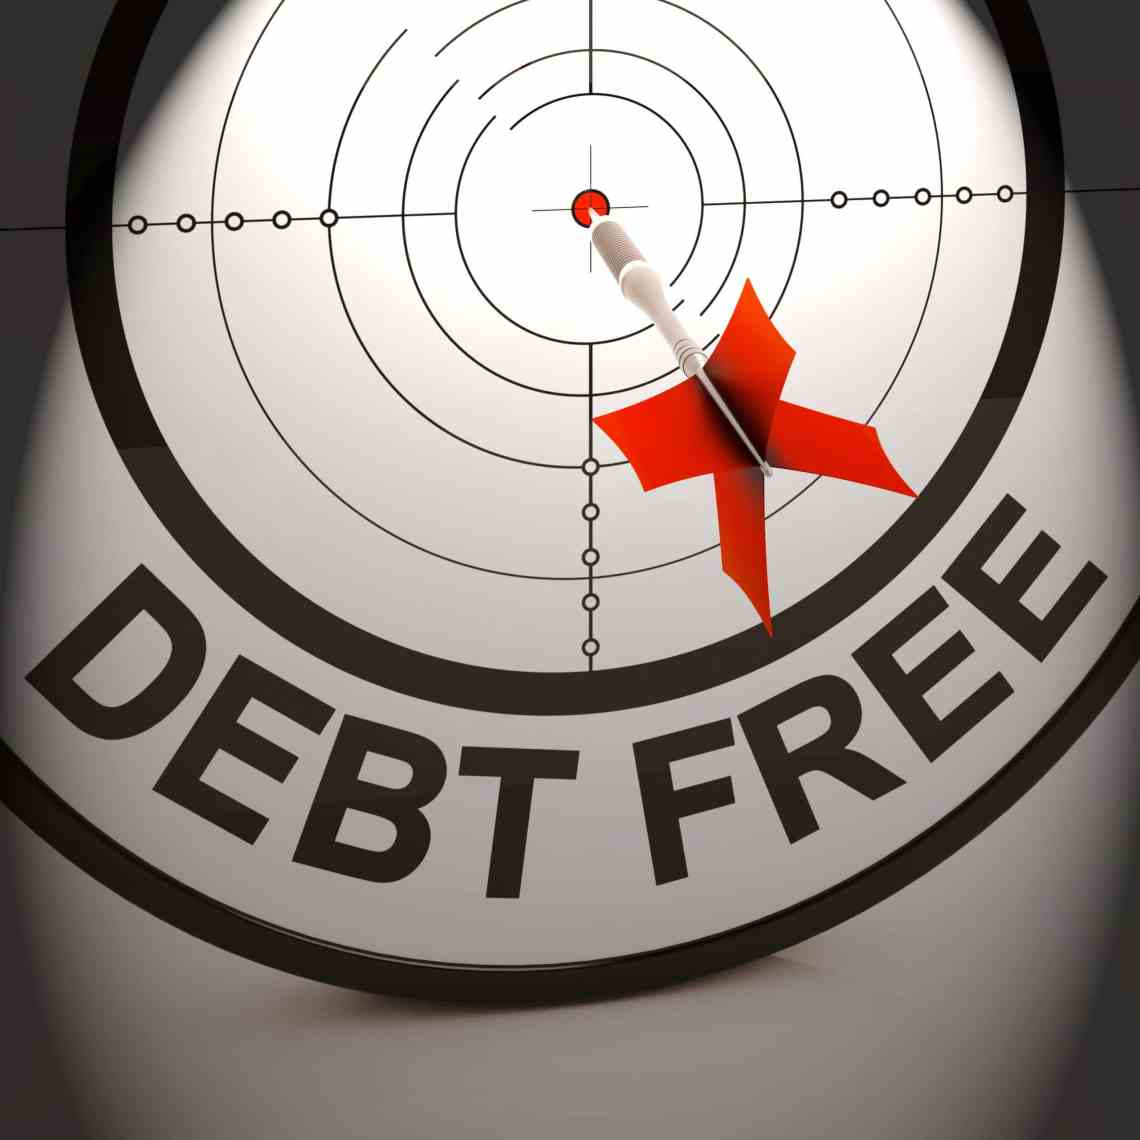 Debt - It's What's Holding Most People Back From Being More Prepared